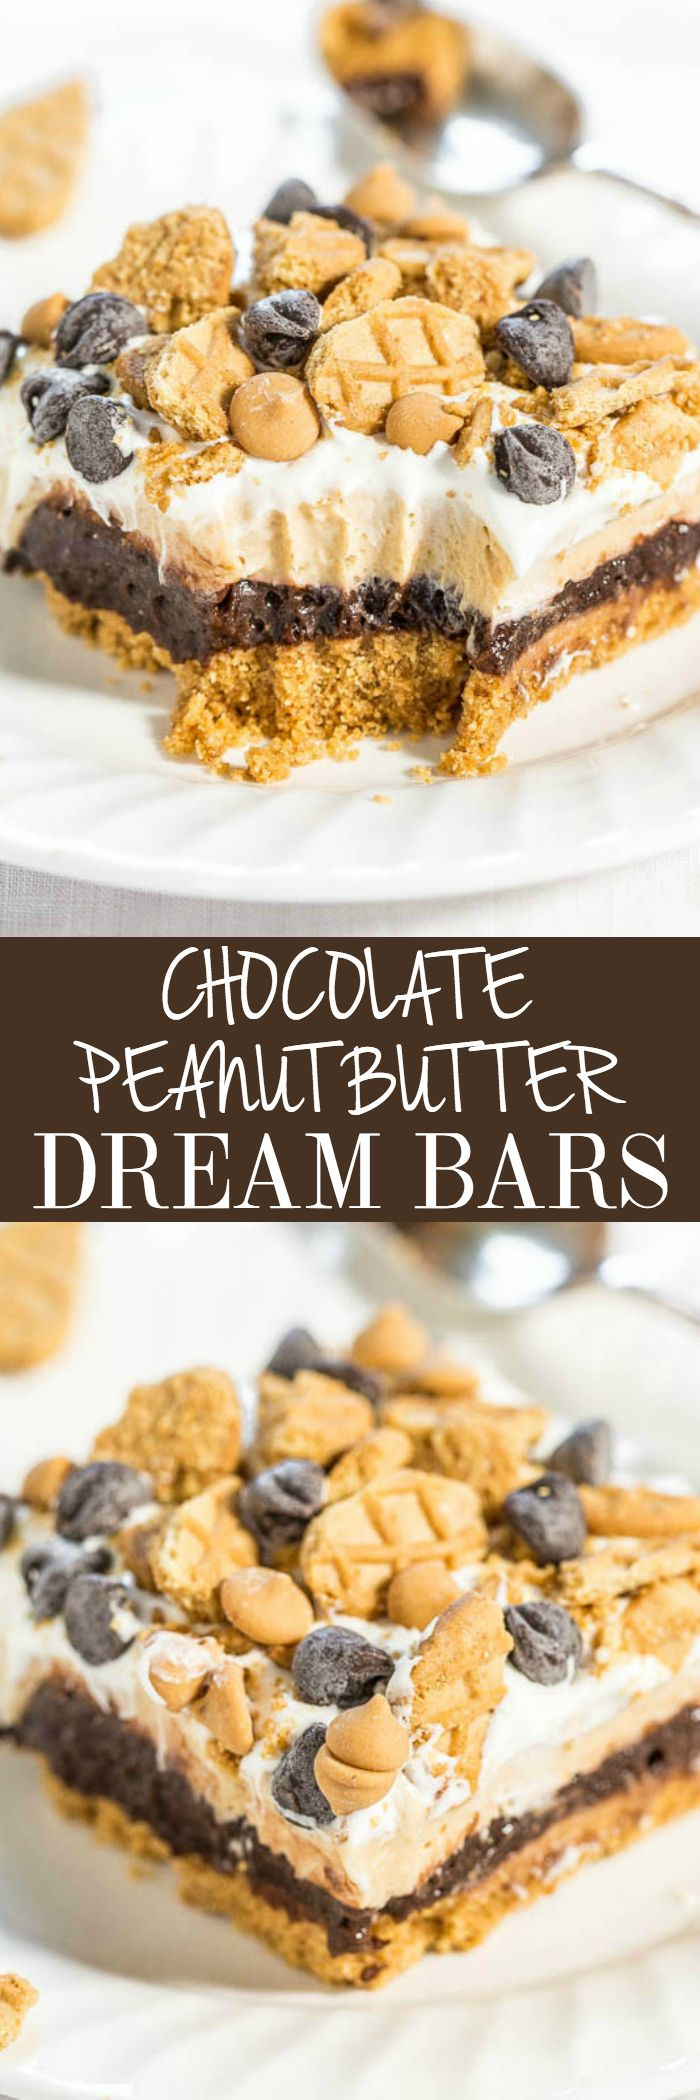 Best 20+ Chocolate names ideas on Pinterest | Dessert names, Best ...